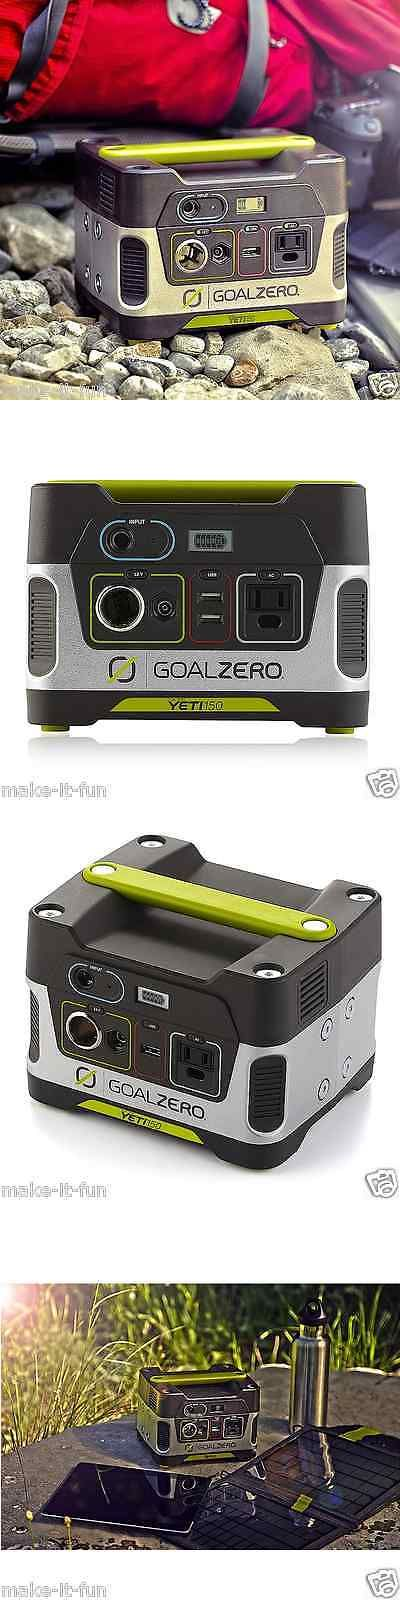 Generators and Heaters 16039: Emergency Quite Silent Generator Portable Solar Ac Power Inverter Camping Gear BUY IT NOW ONLY: $246.35